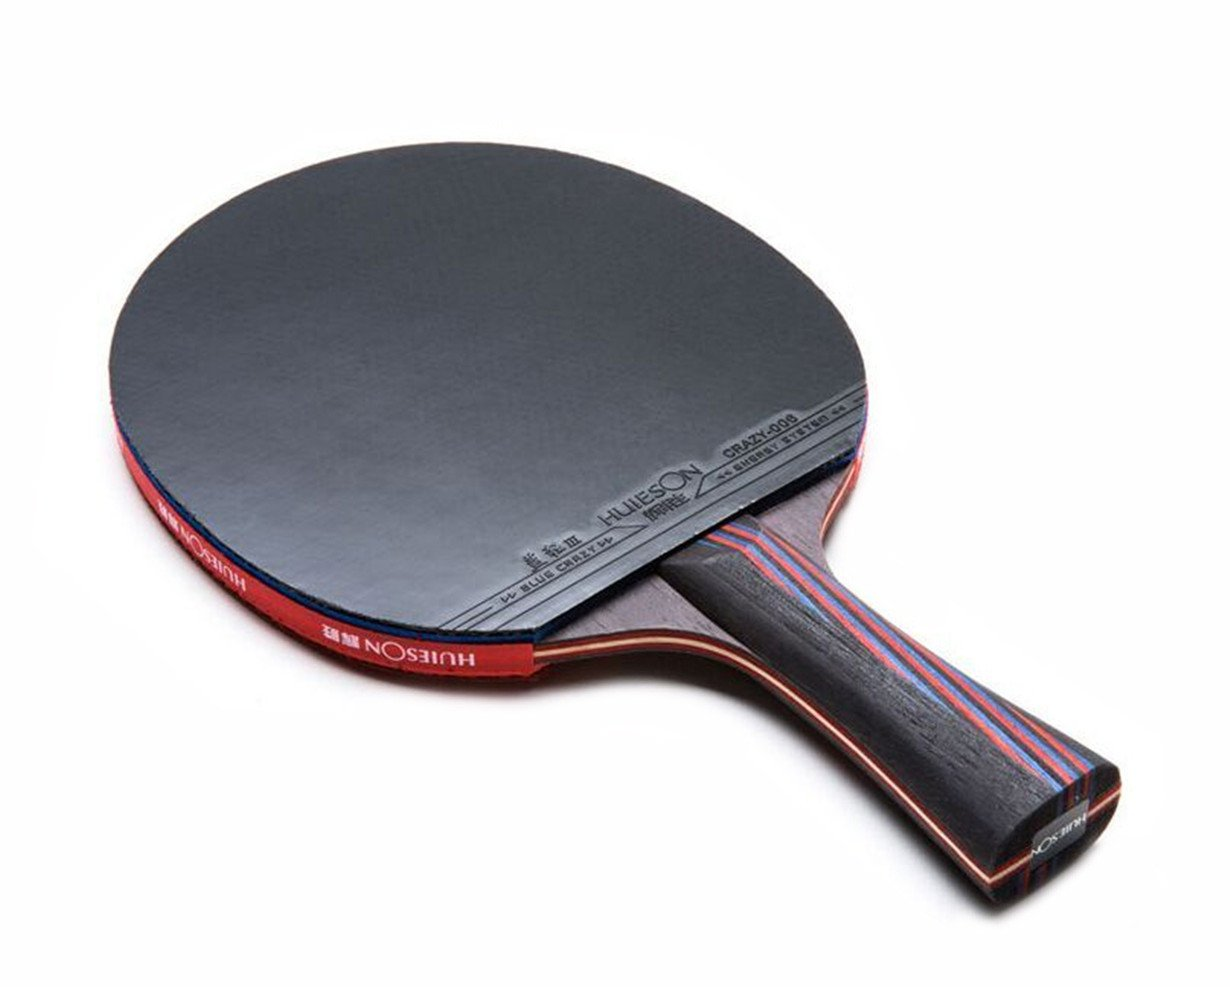 Amazon.com : LANFIRE(huieson) Table Tennis Rackets red and Black Carbon Wang Bottom Blue Sponge Table Tennis Paddle (Long) : Sports & Outdoors